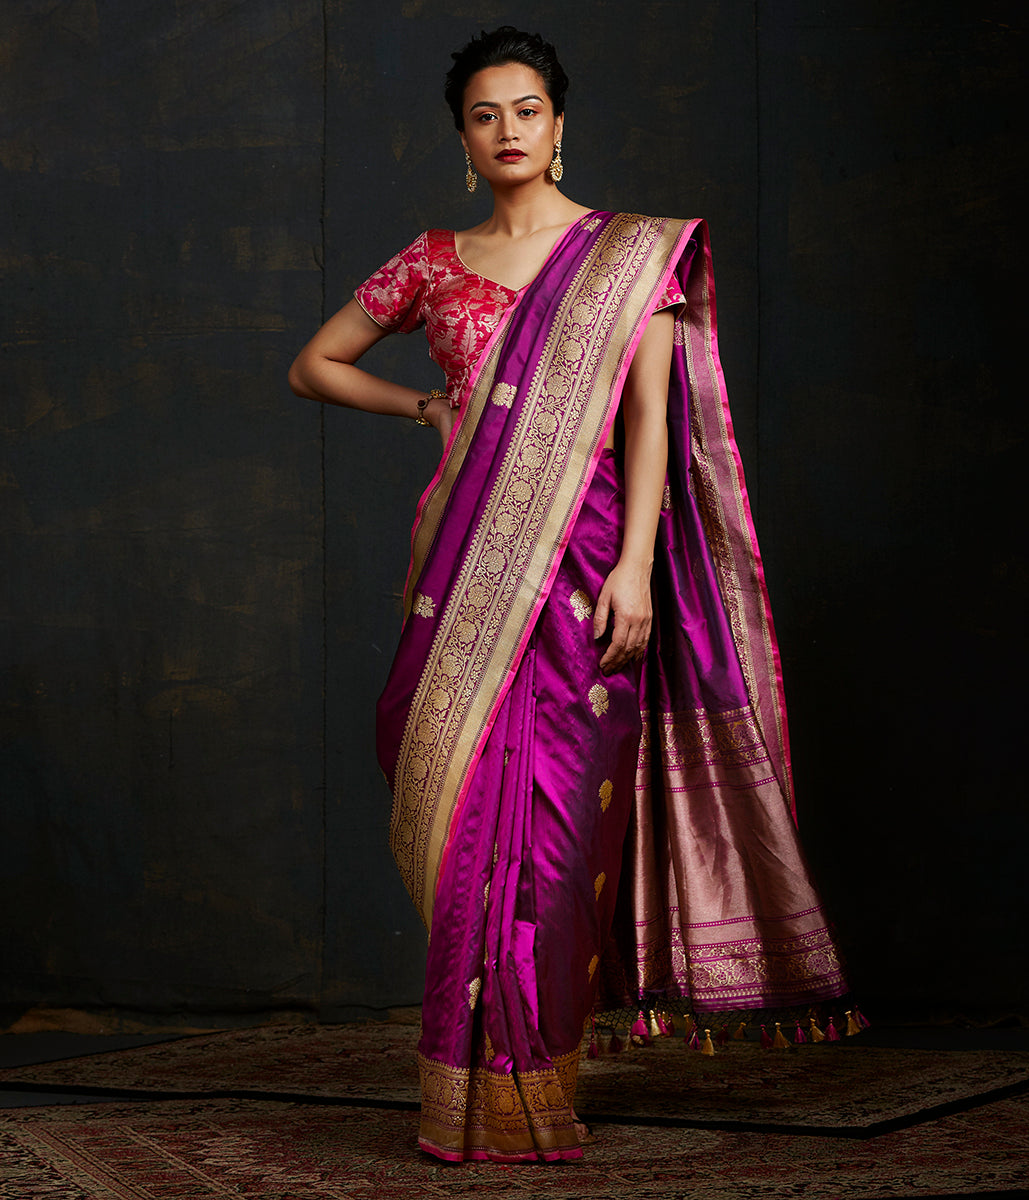 Handwoven kadhwa banarasi saree in purple with floral motifs woven in gold zari